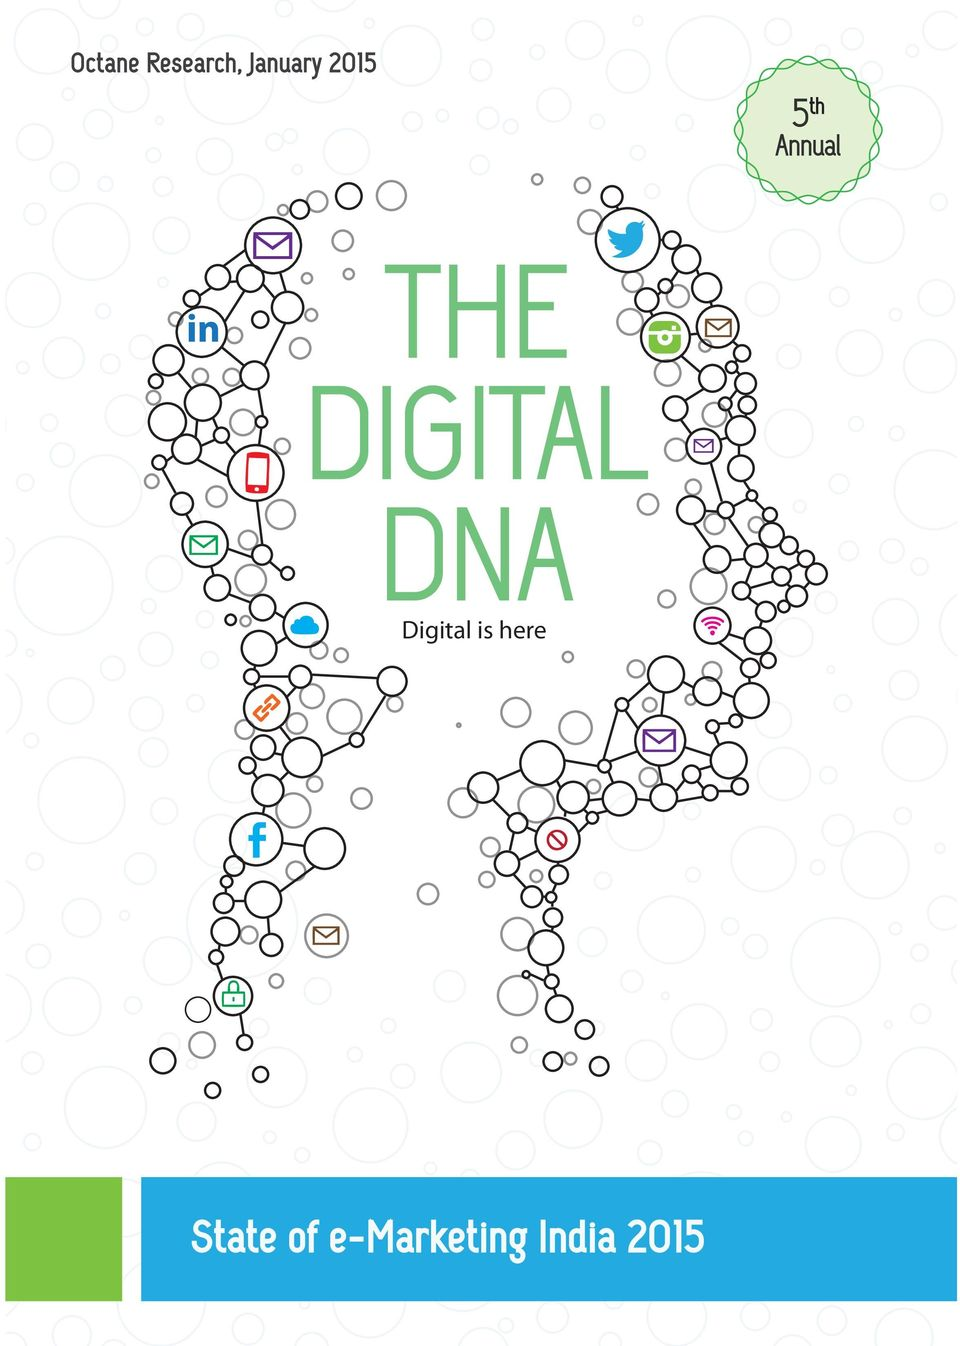 DIGITAL DNA Digital is